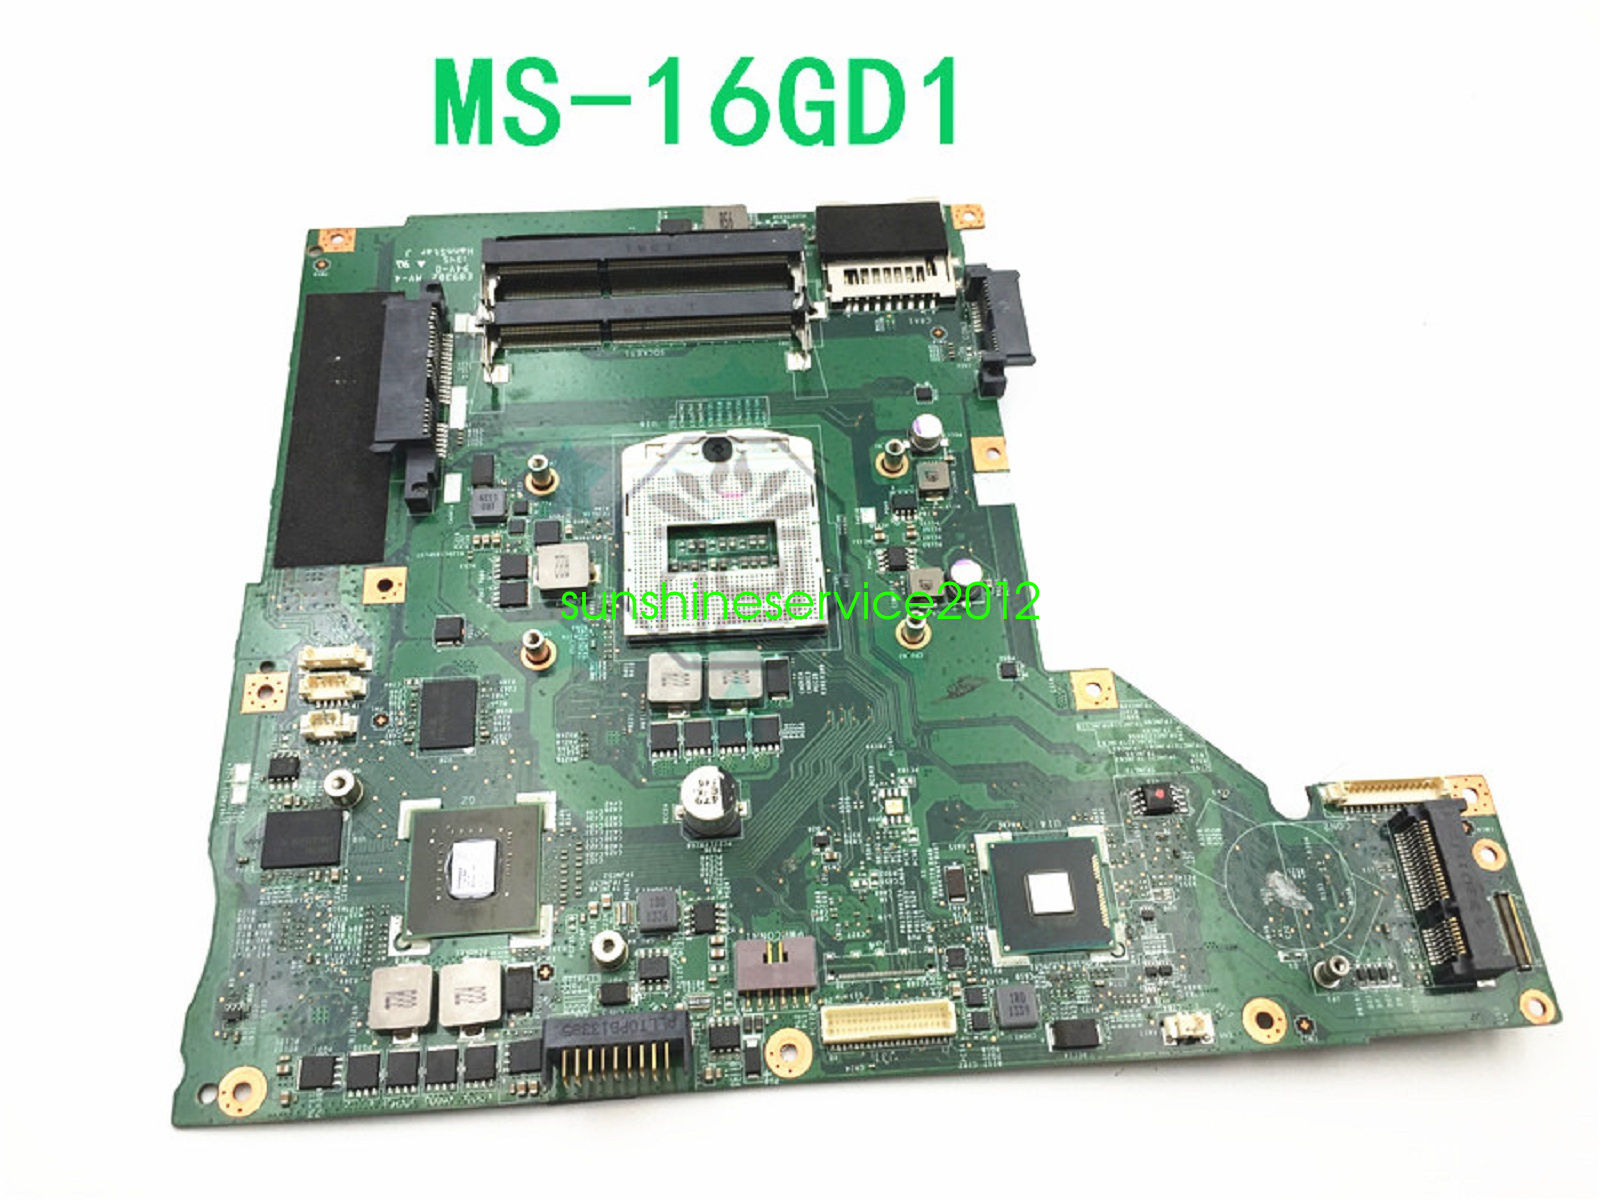 msi cx61 cx60 laptop intel motherboard ms-16gd1 ver  1 1  ms-16gd1